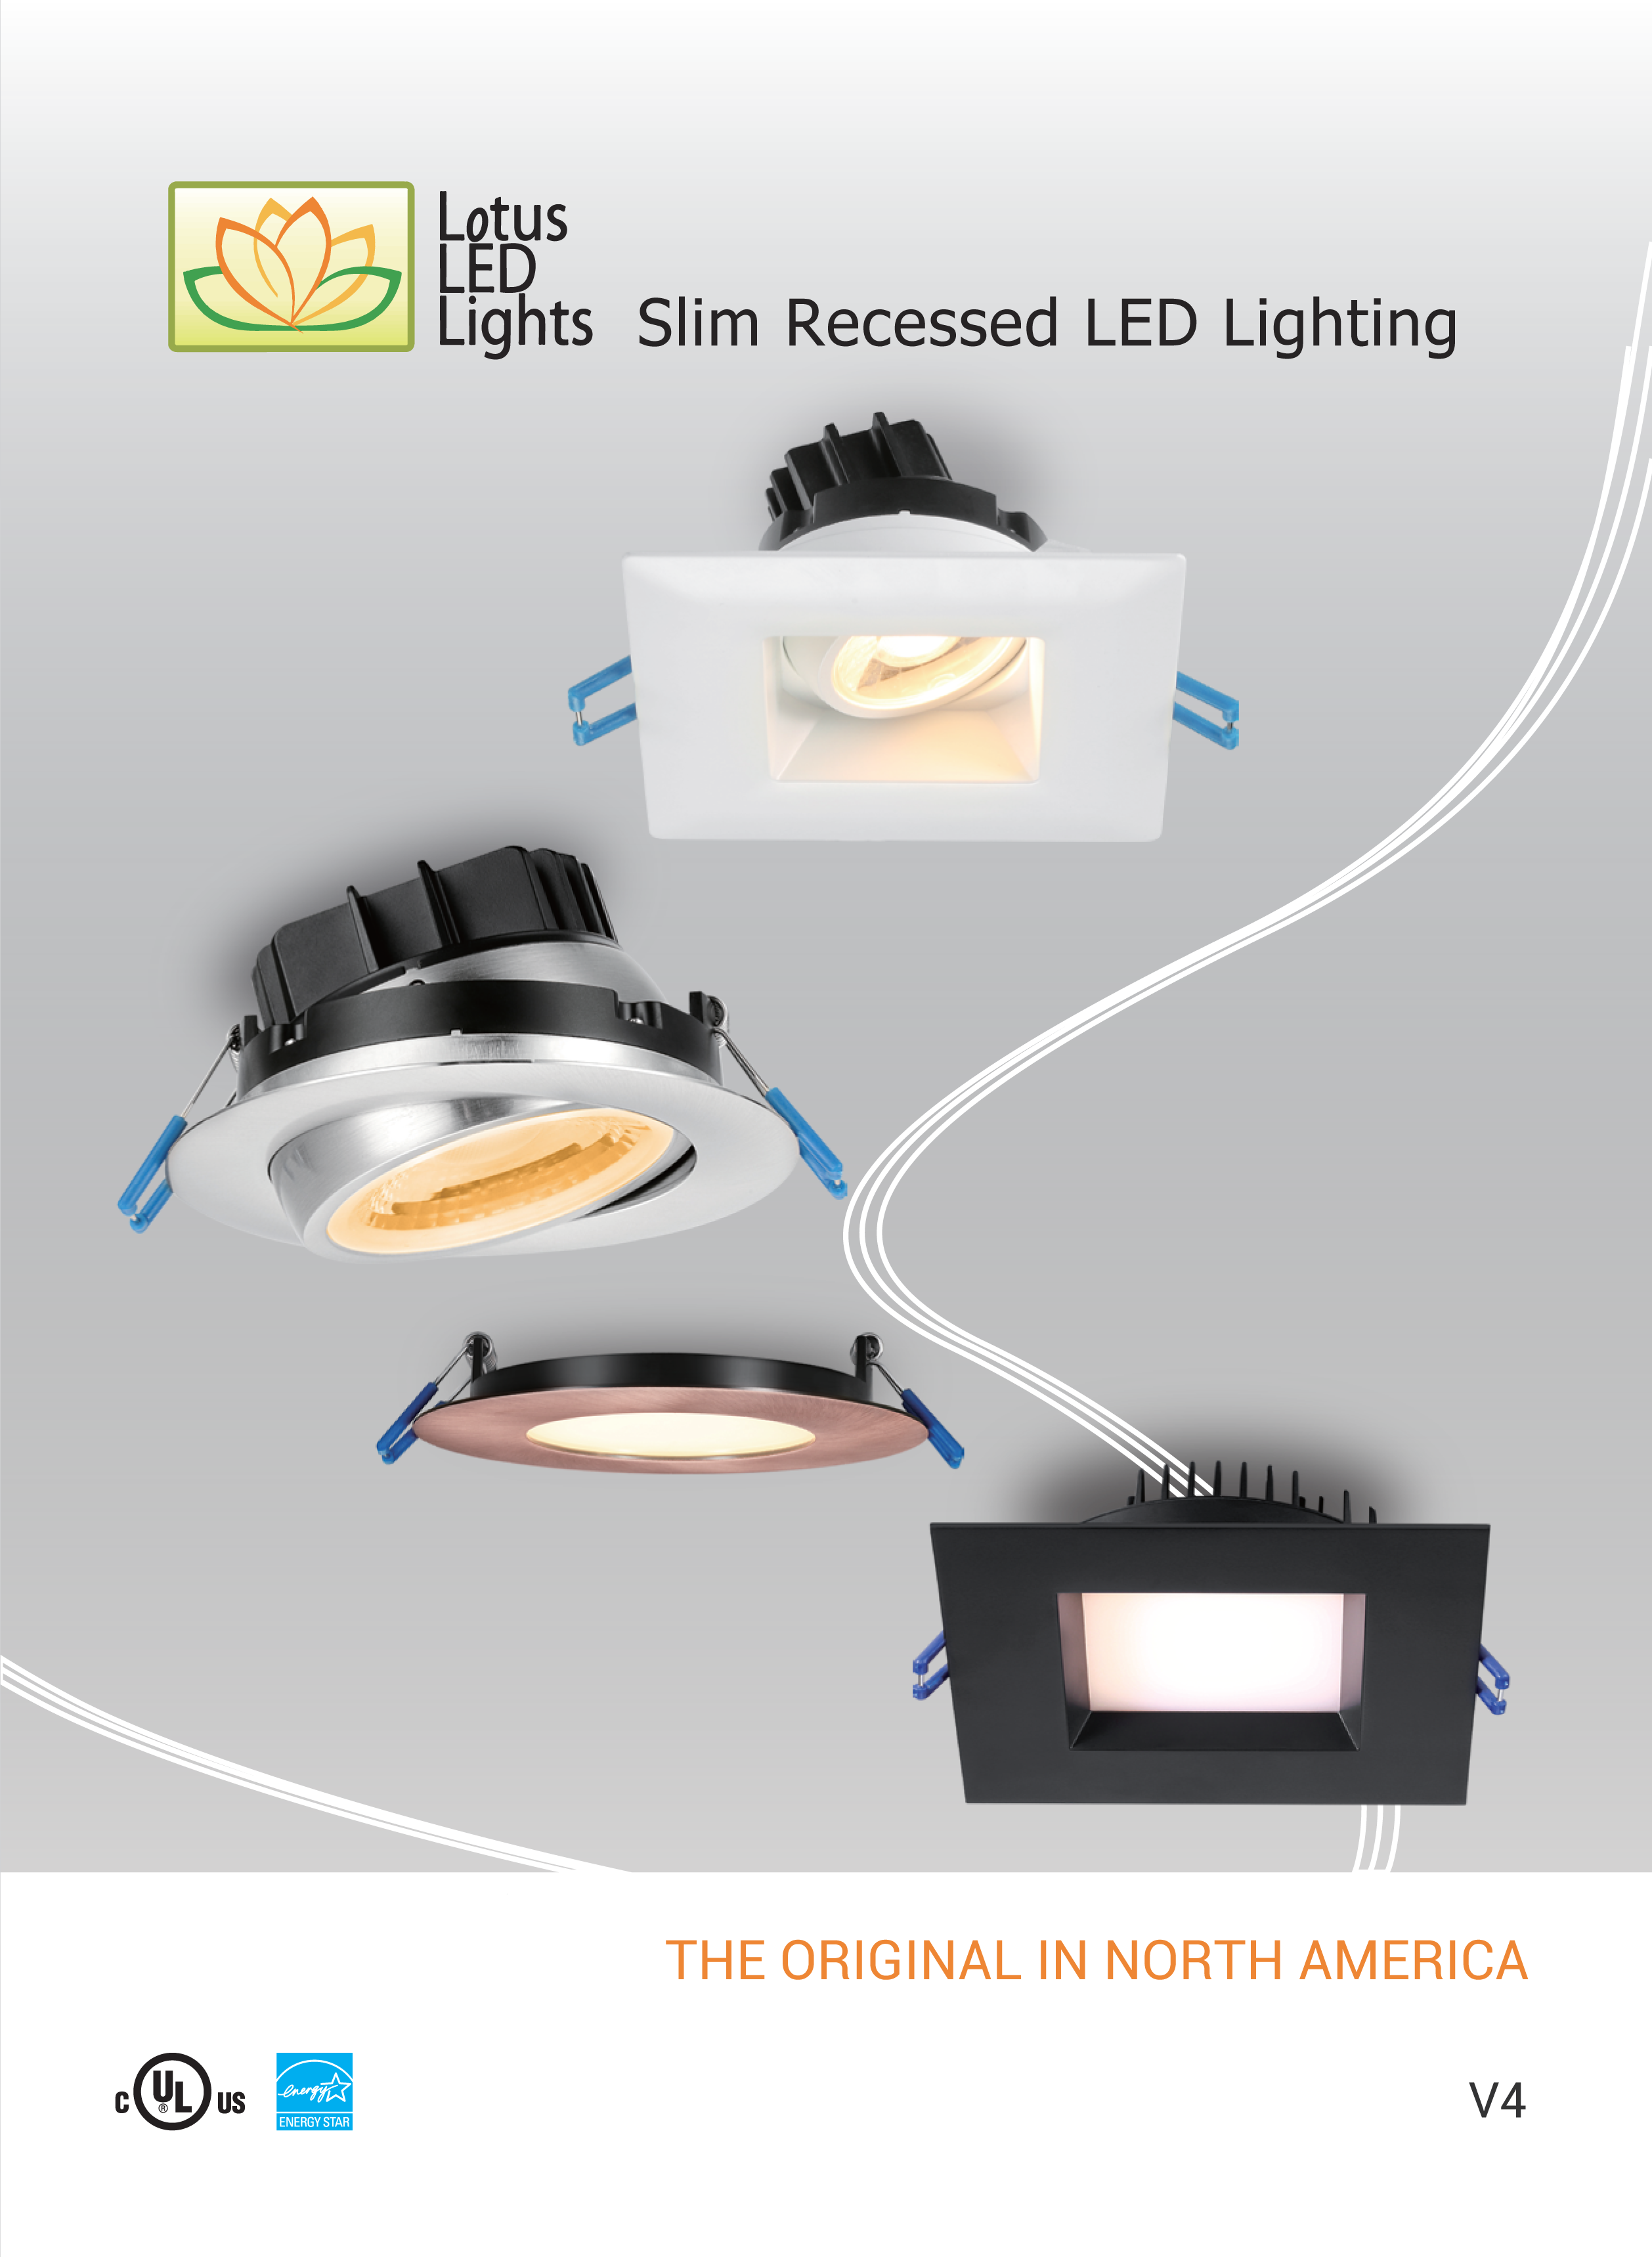 Super Thin Recessed Led Lighting Lotus Led Lights Products